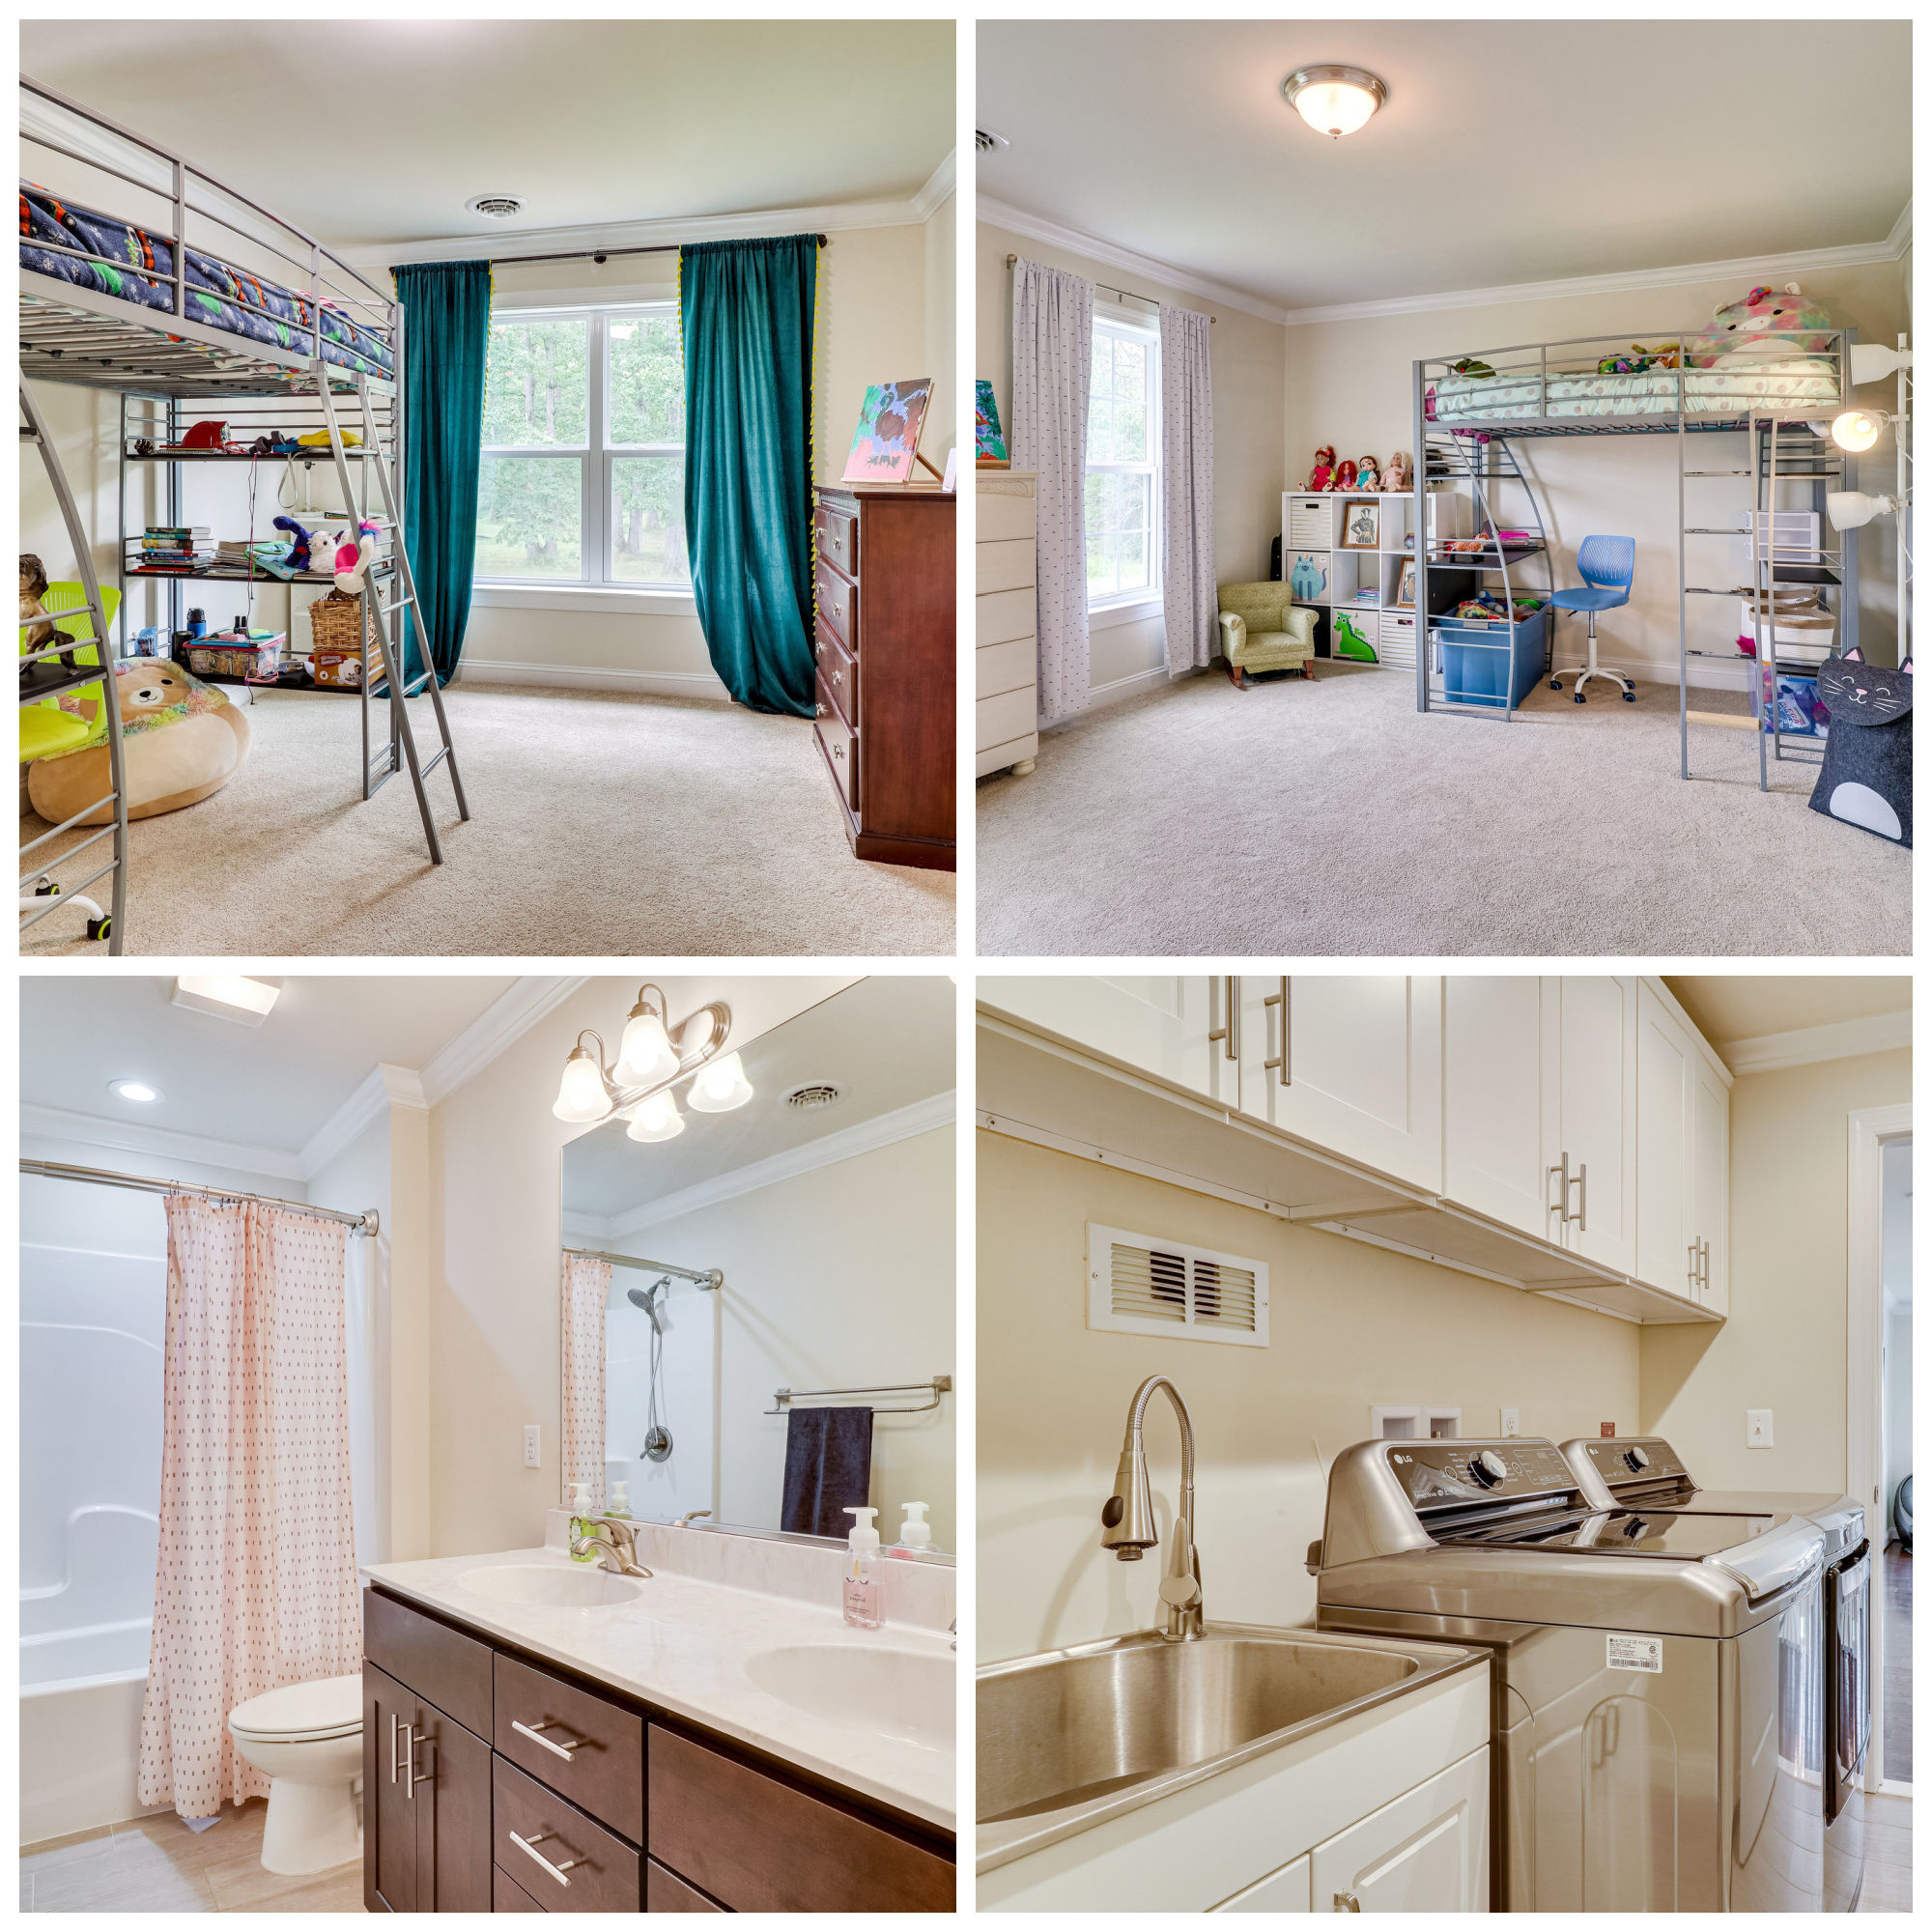 20166 Redrose Dr, Sterling- Additional Bedrooms, Bathroom, and Laundry